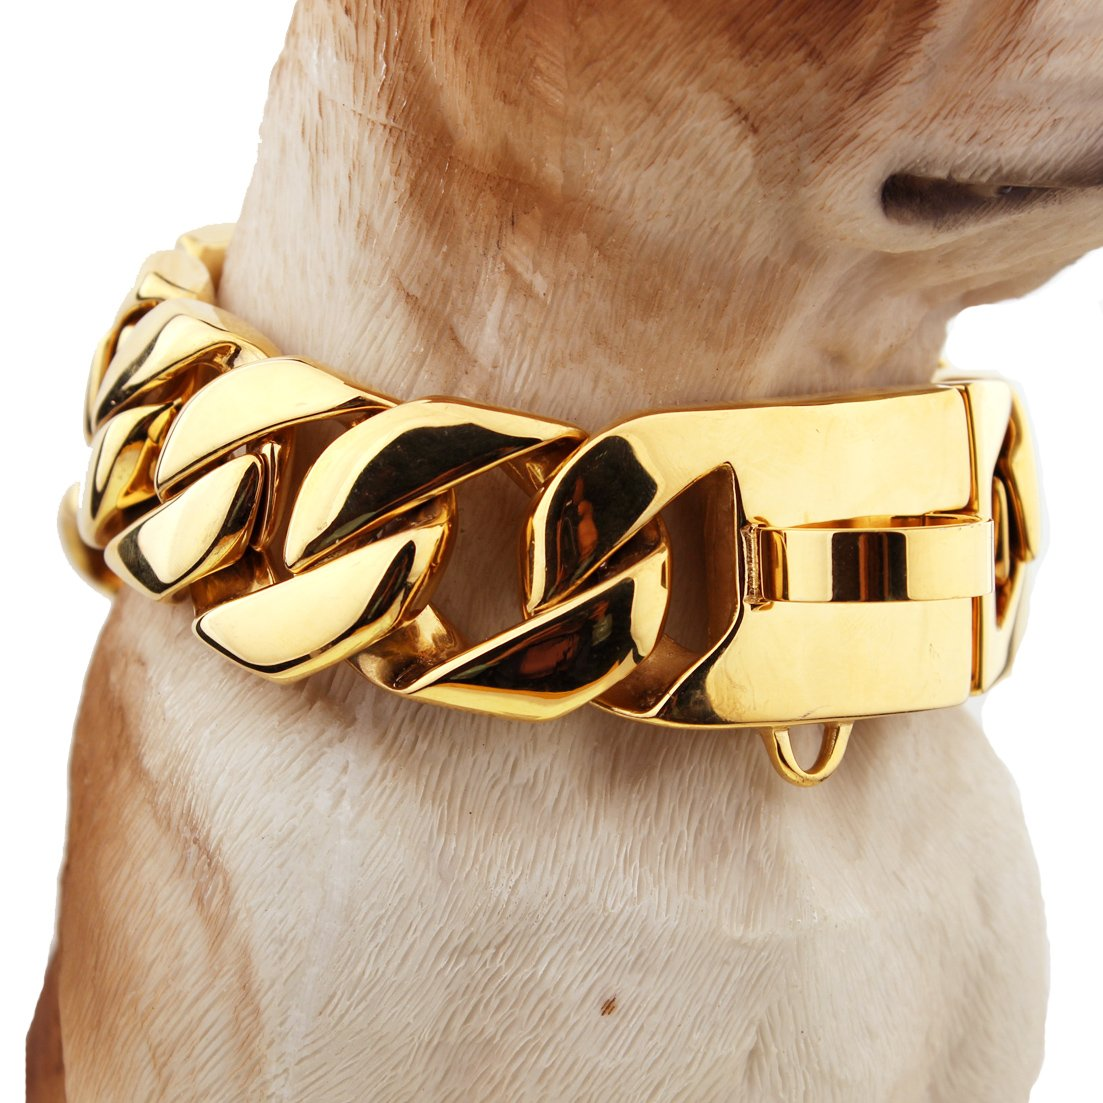 FANS JEWELRY Super Huge Gold Plated Trainning Collars 316L Stainless Steel Dog Choker Curb Cuban Chain Necklacee(22inches,30mm) by FANS JEWELRY